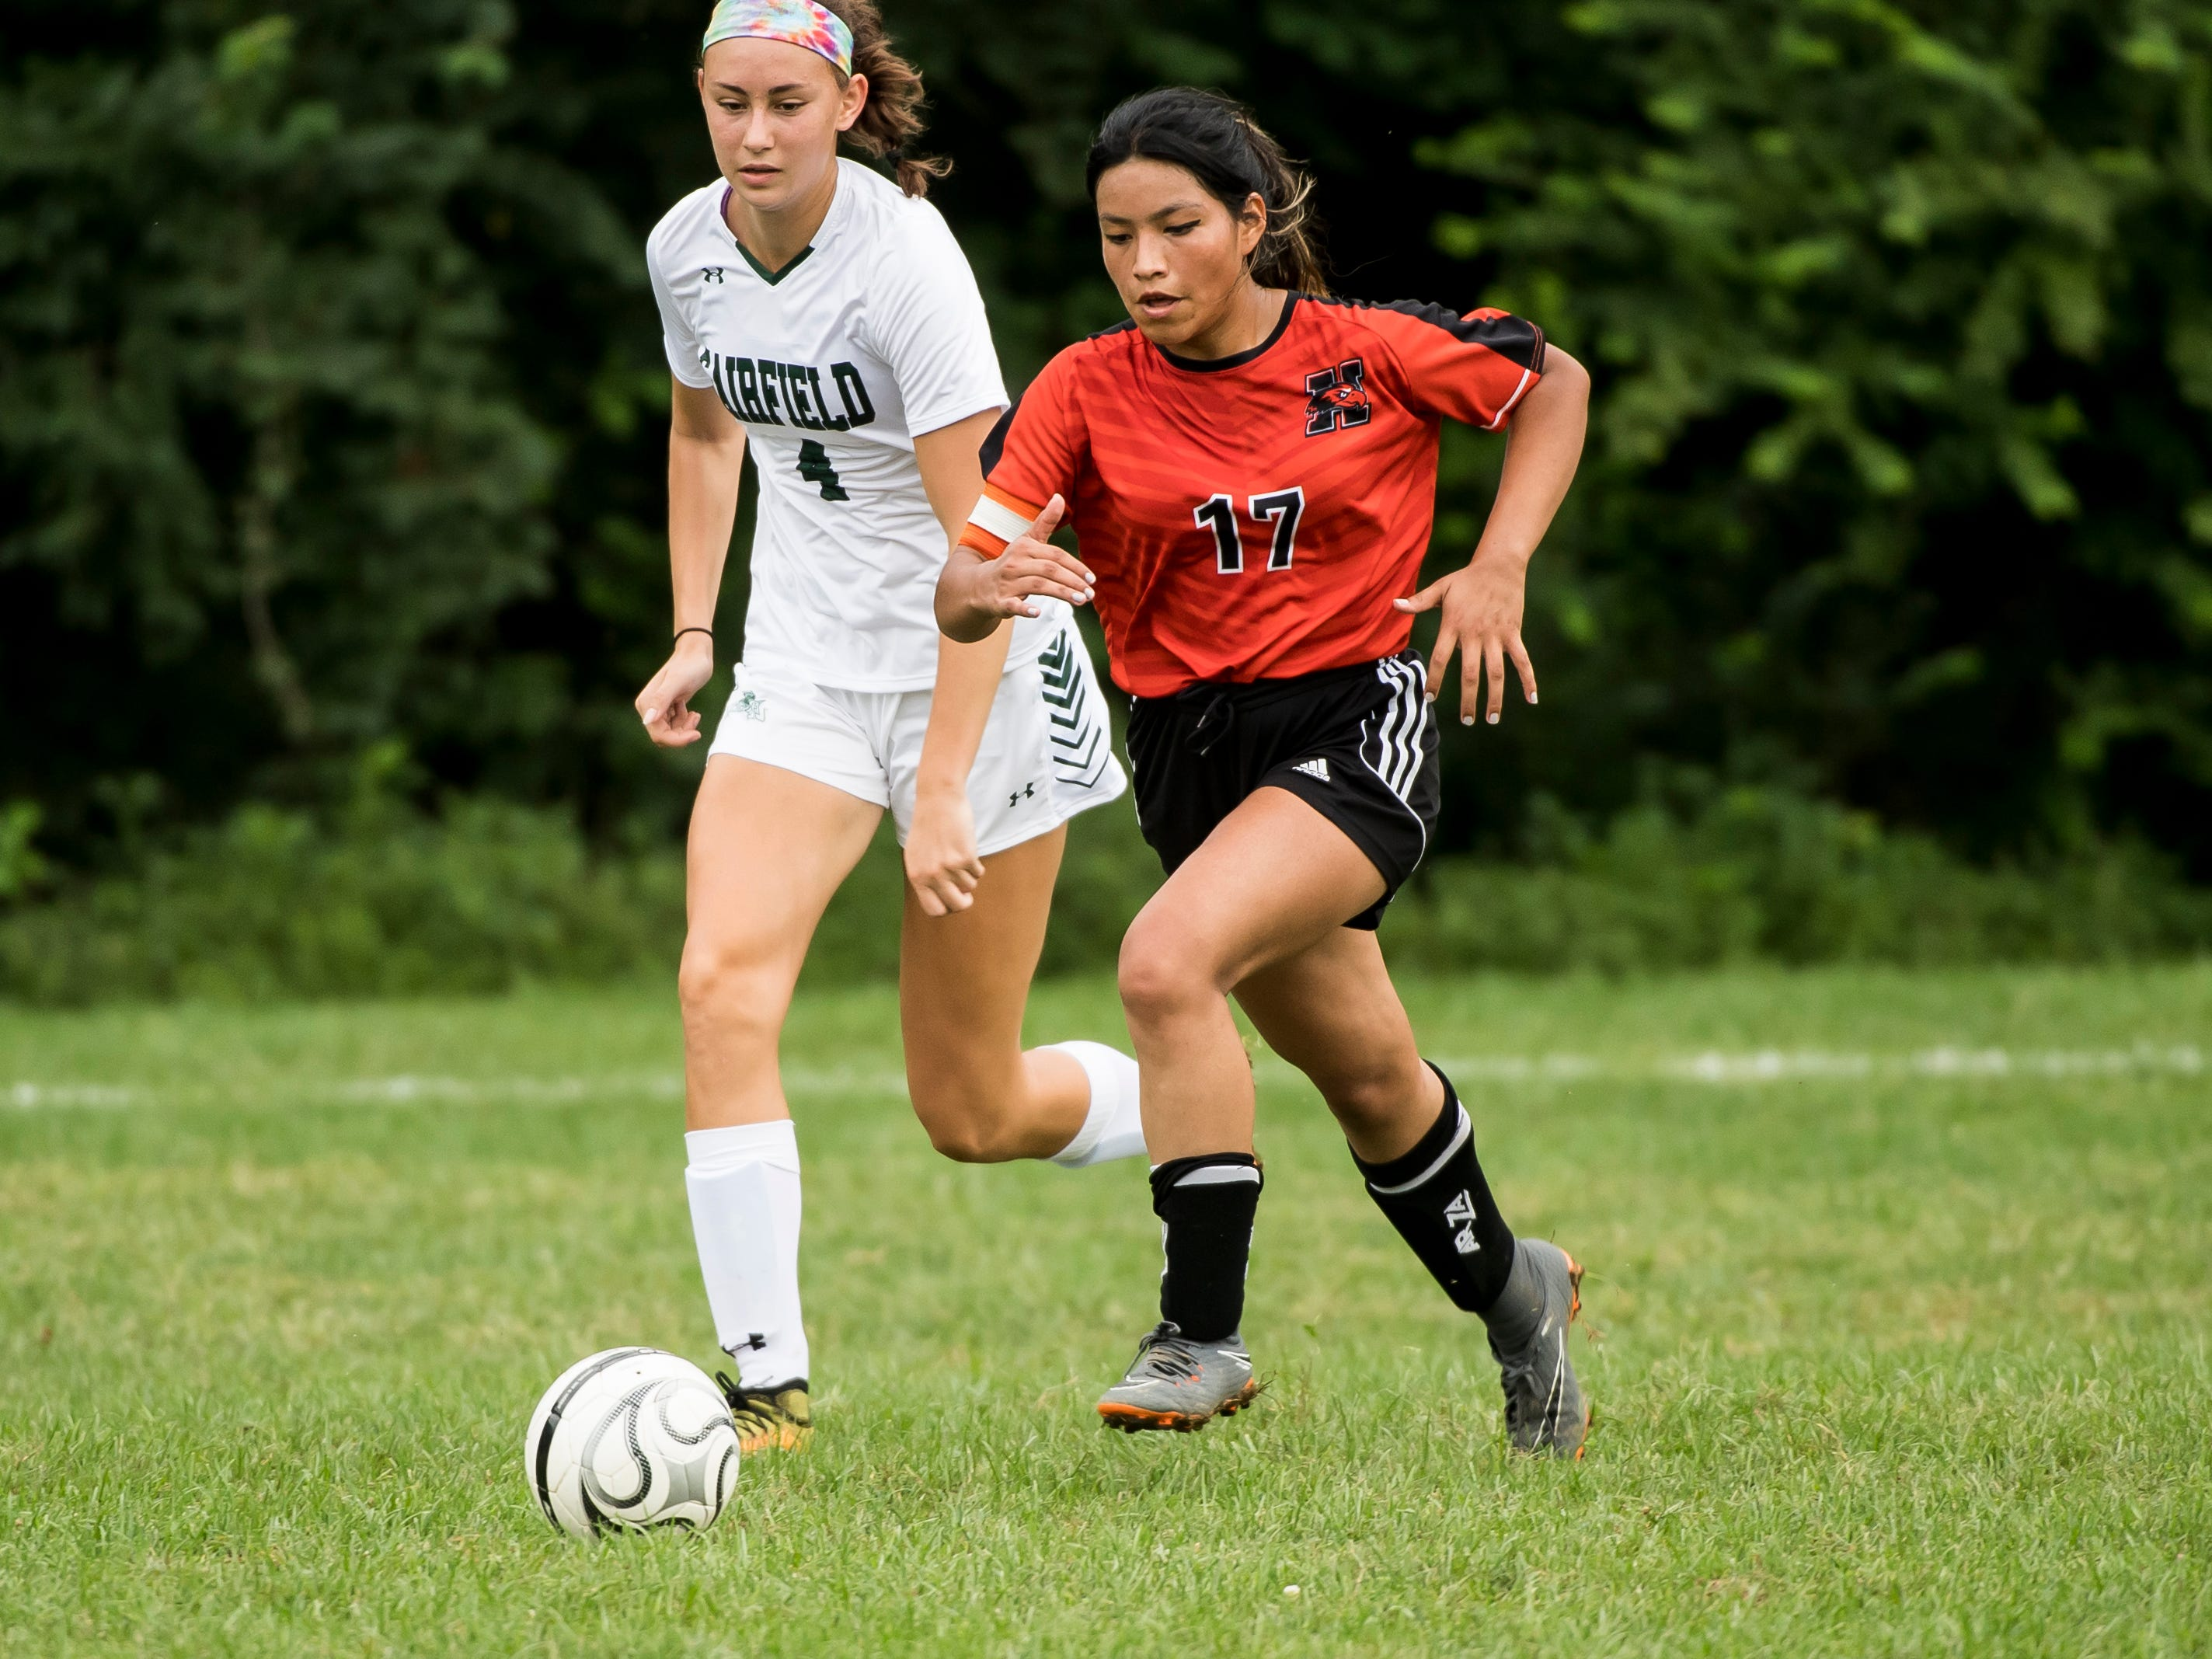 Hanover's Lourdes Ibanez (17) moves the ball down the field as Fairfield's Kendra Miller gives chase on Thursday, September 13, 2018.